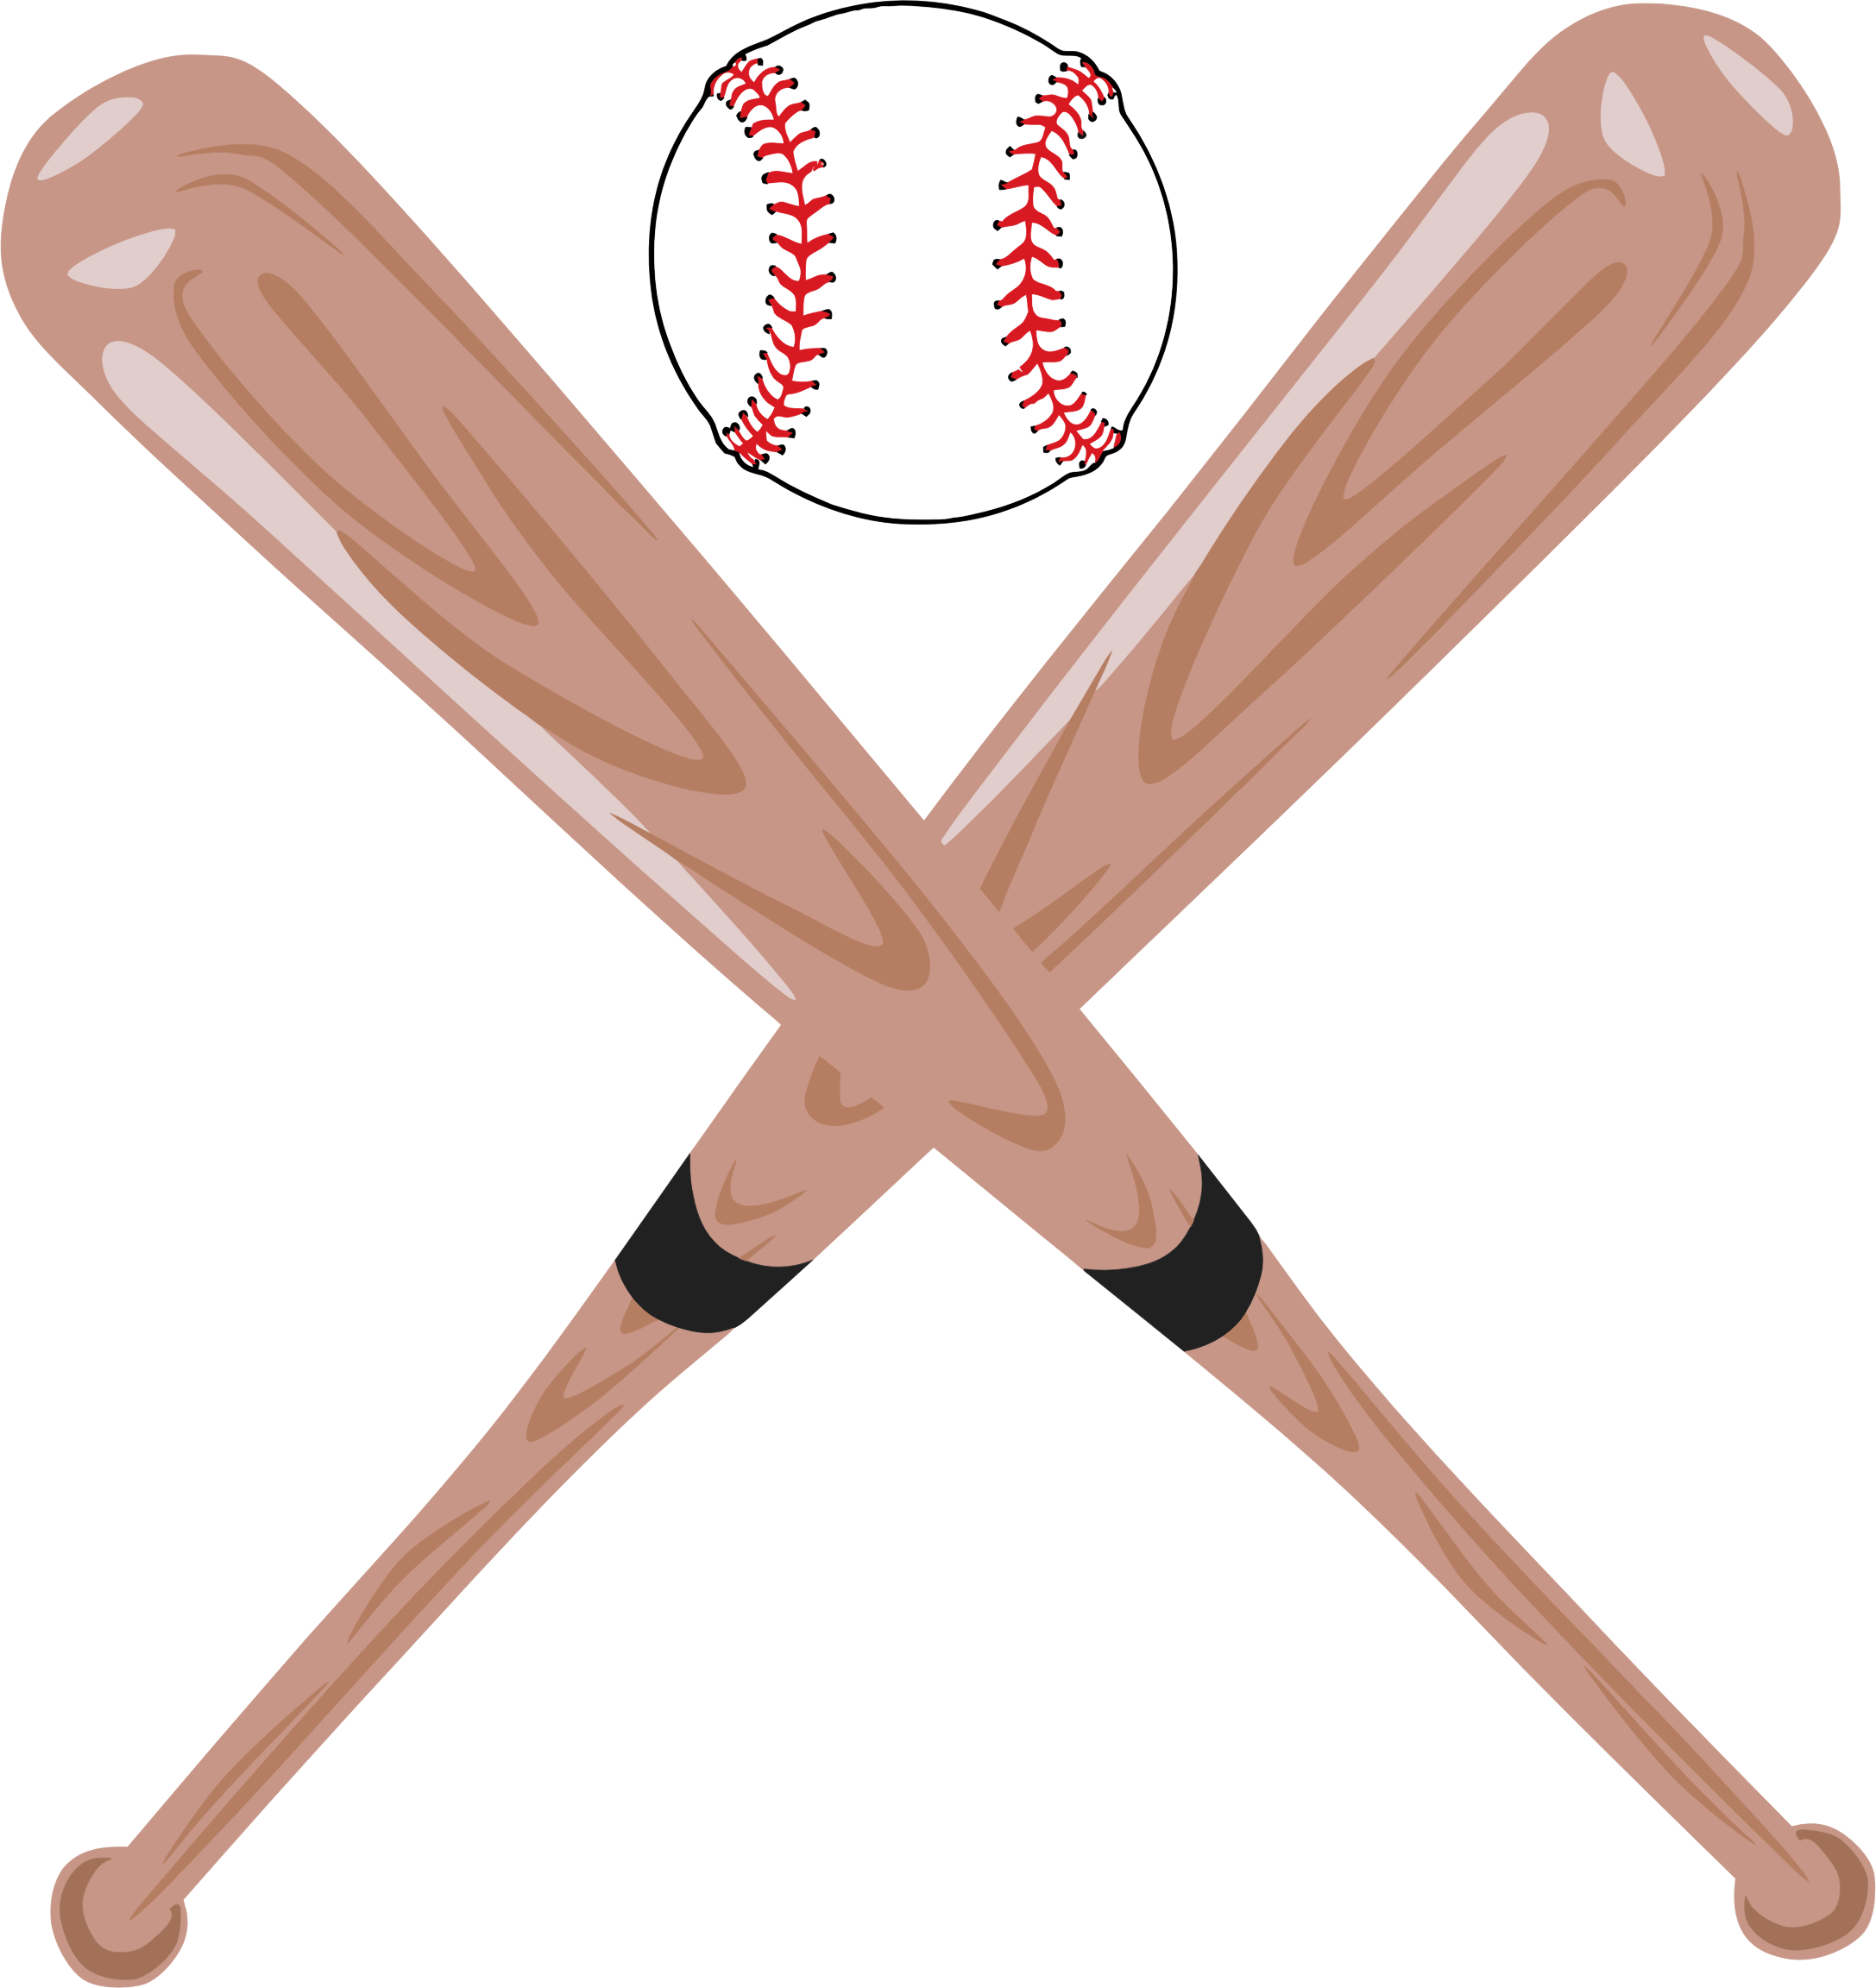 Baseball Illustration by GDJ